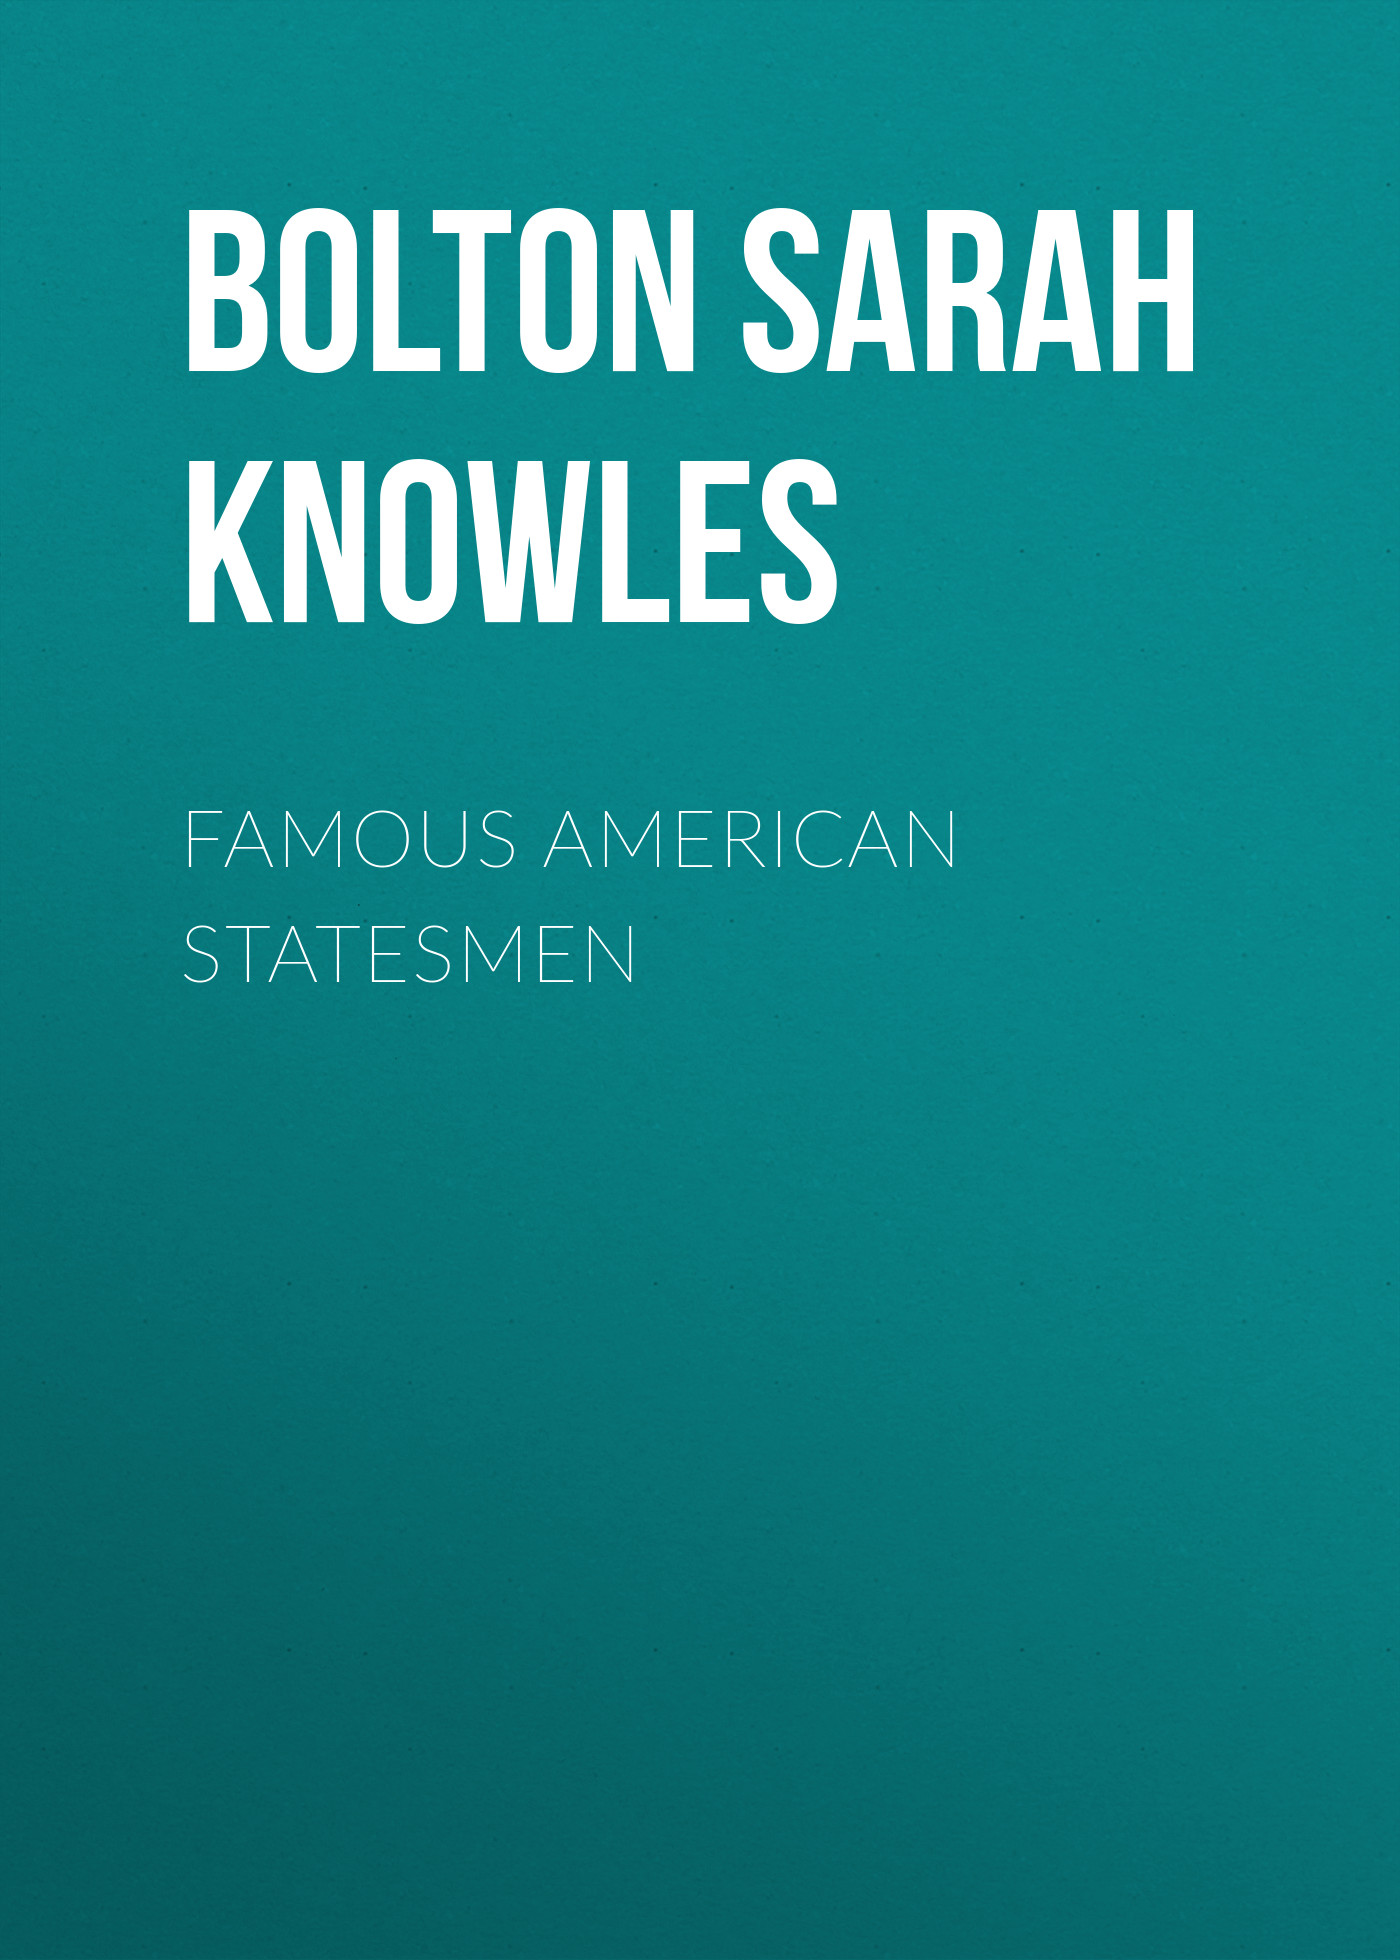 Bolton Sarah Knowles Famous American Statesmen bolton sarah knowles famous men of science